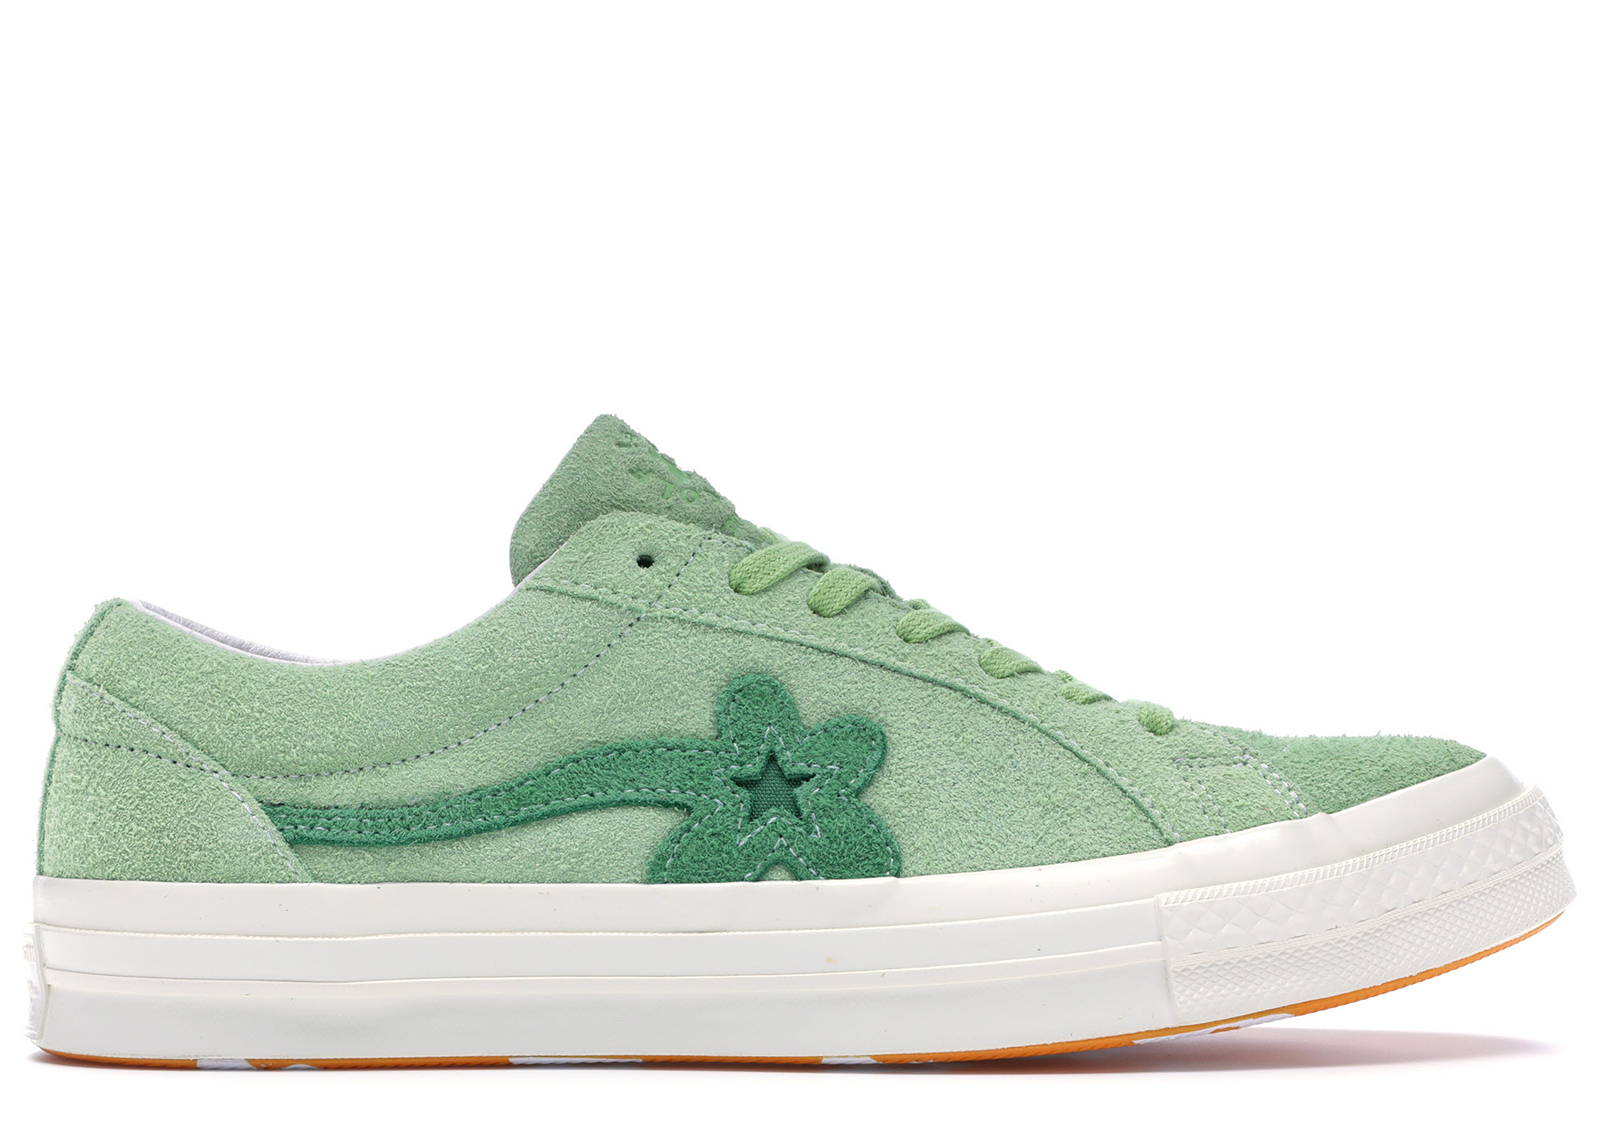 02c15aa2a935 HypeAnalyzer · Converse One Star Ox Tyler the Creator Golf Le Fleur Jade  Lime